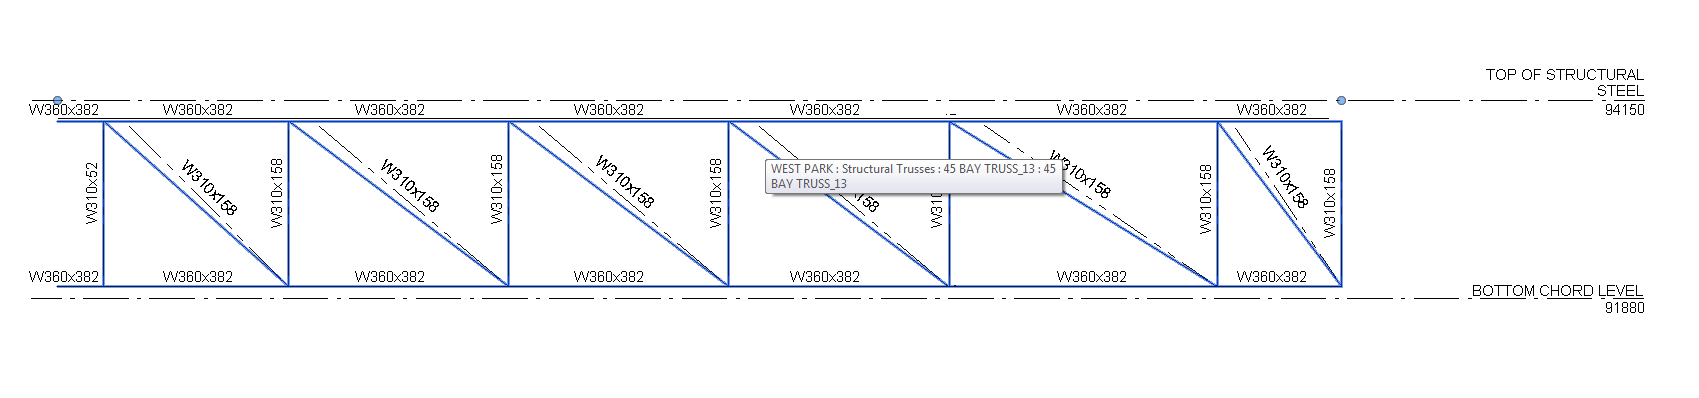 Why are my revit truss diagonal members off?? - Autodesk